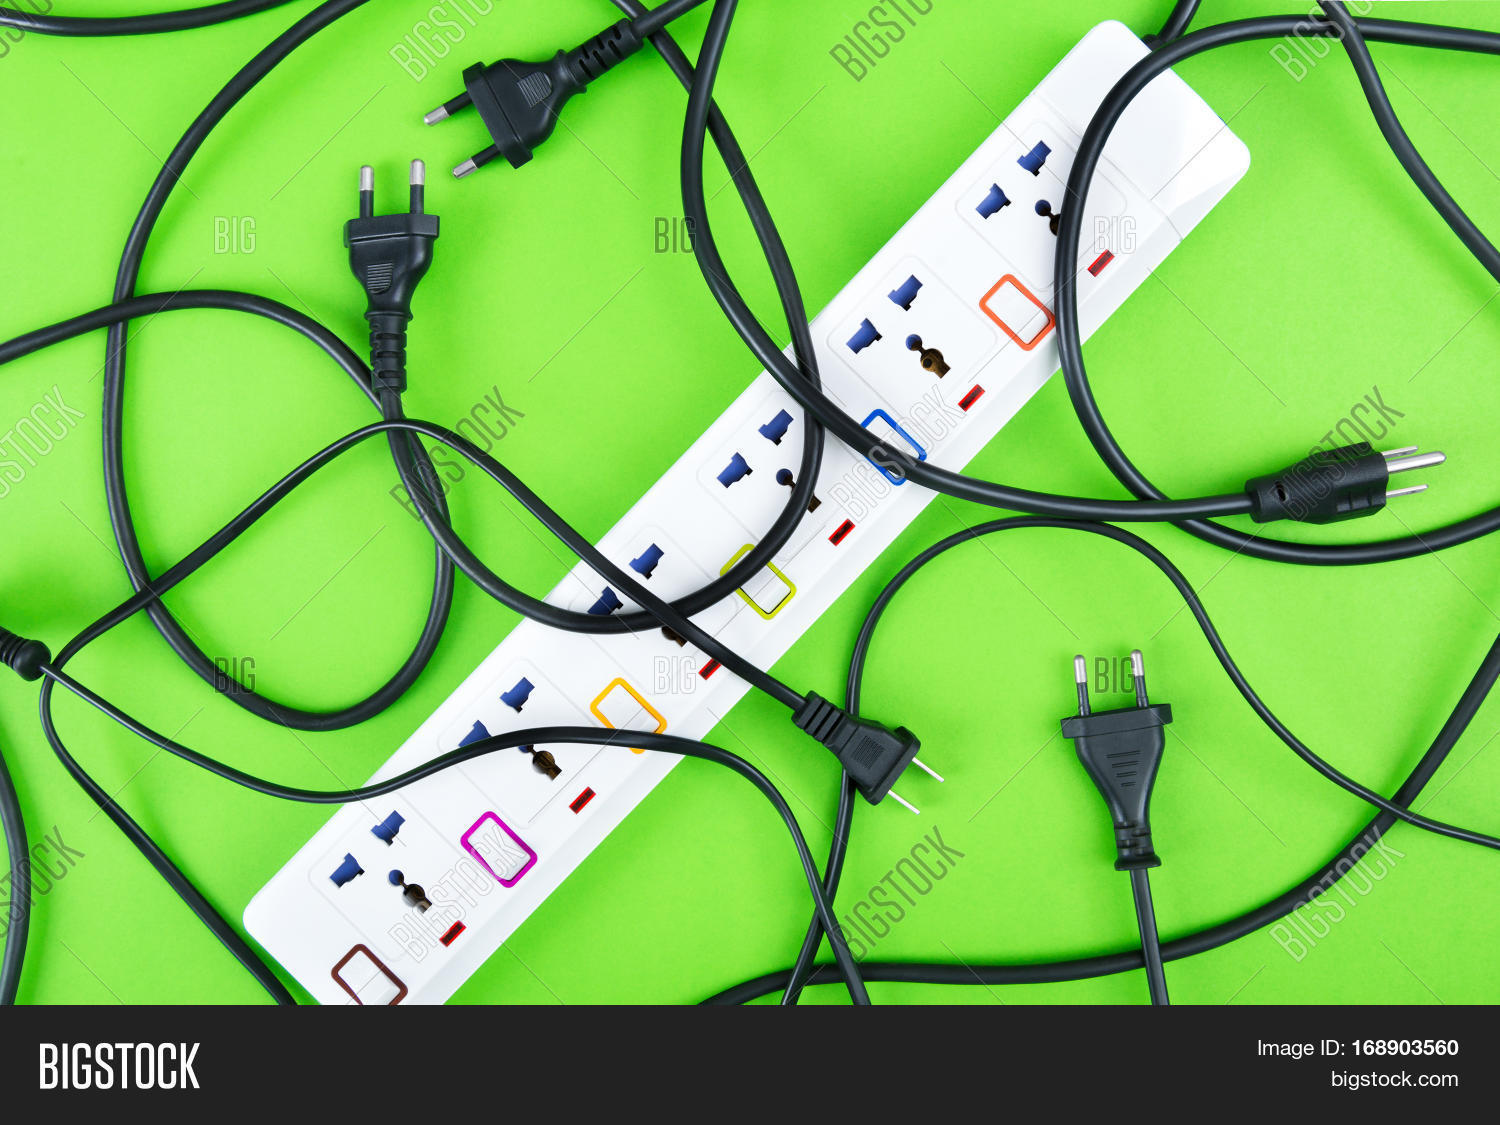 Messy Electrical Cords Image Photo Free Trial Bigstock Wiring Of Plugs And Wires Unconnected Power Strip Or Extension Block With